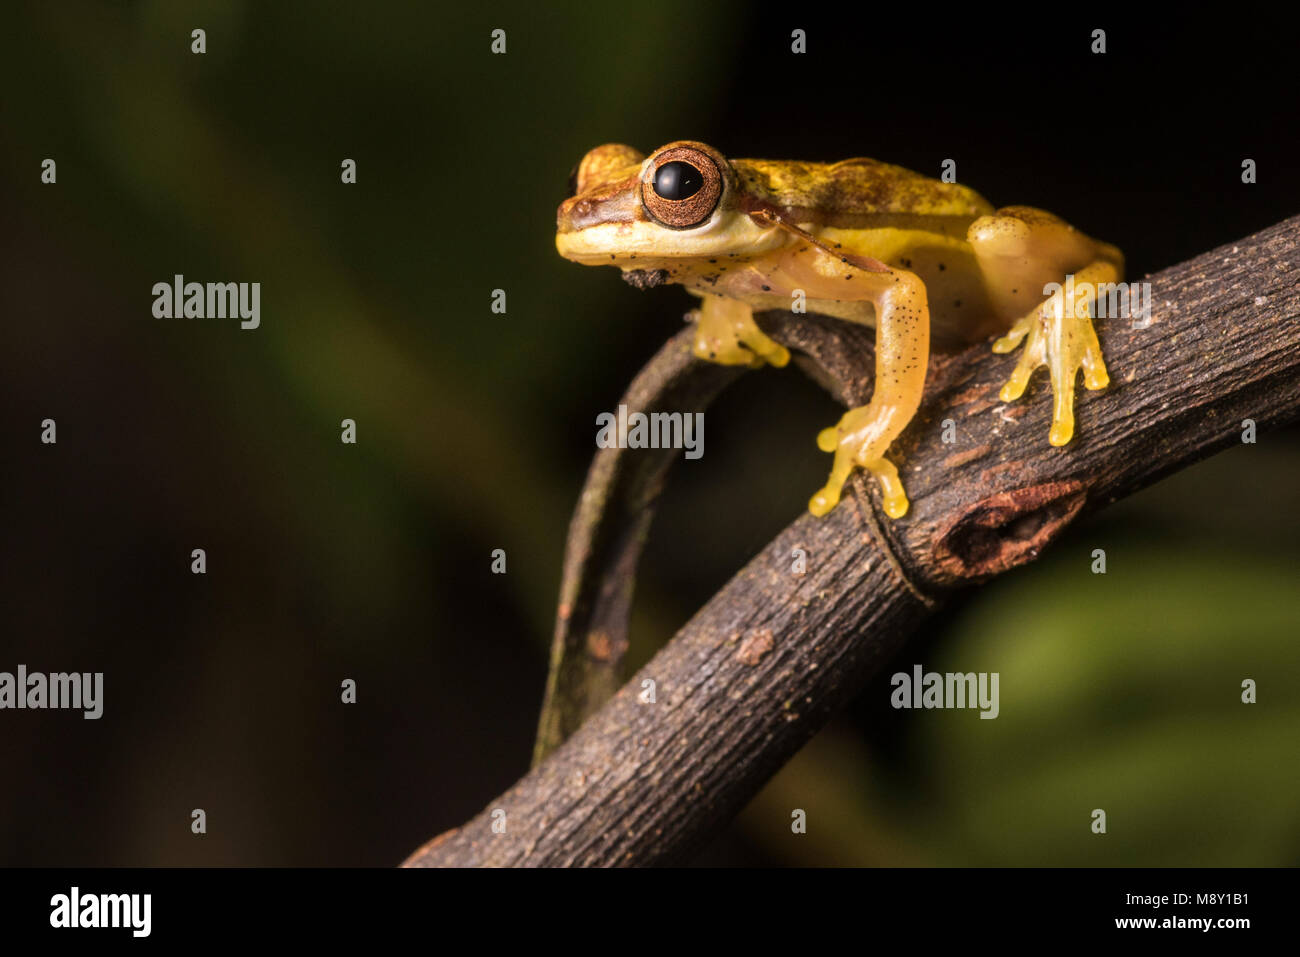 A bright yellow clown tree frog (Dendropsophus species) from the jungle of Peru. - Stock Image